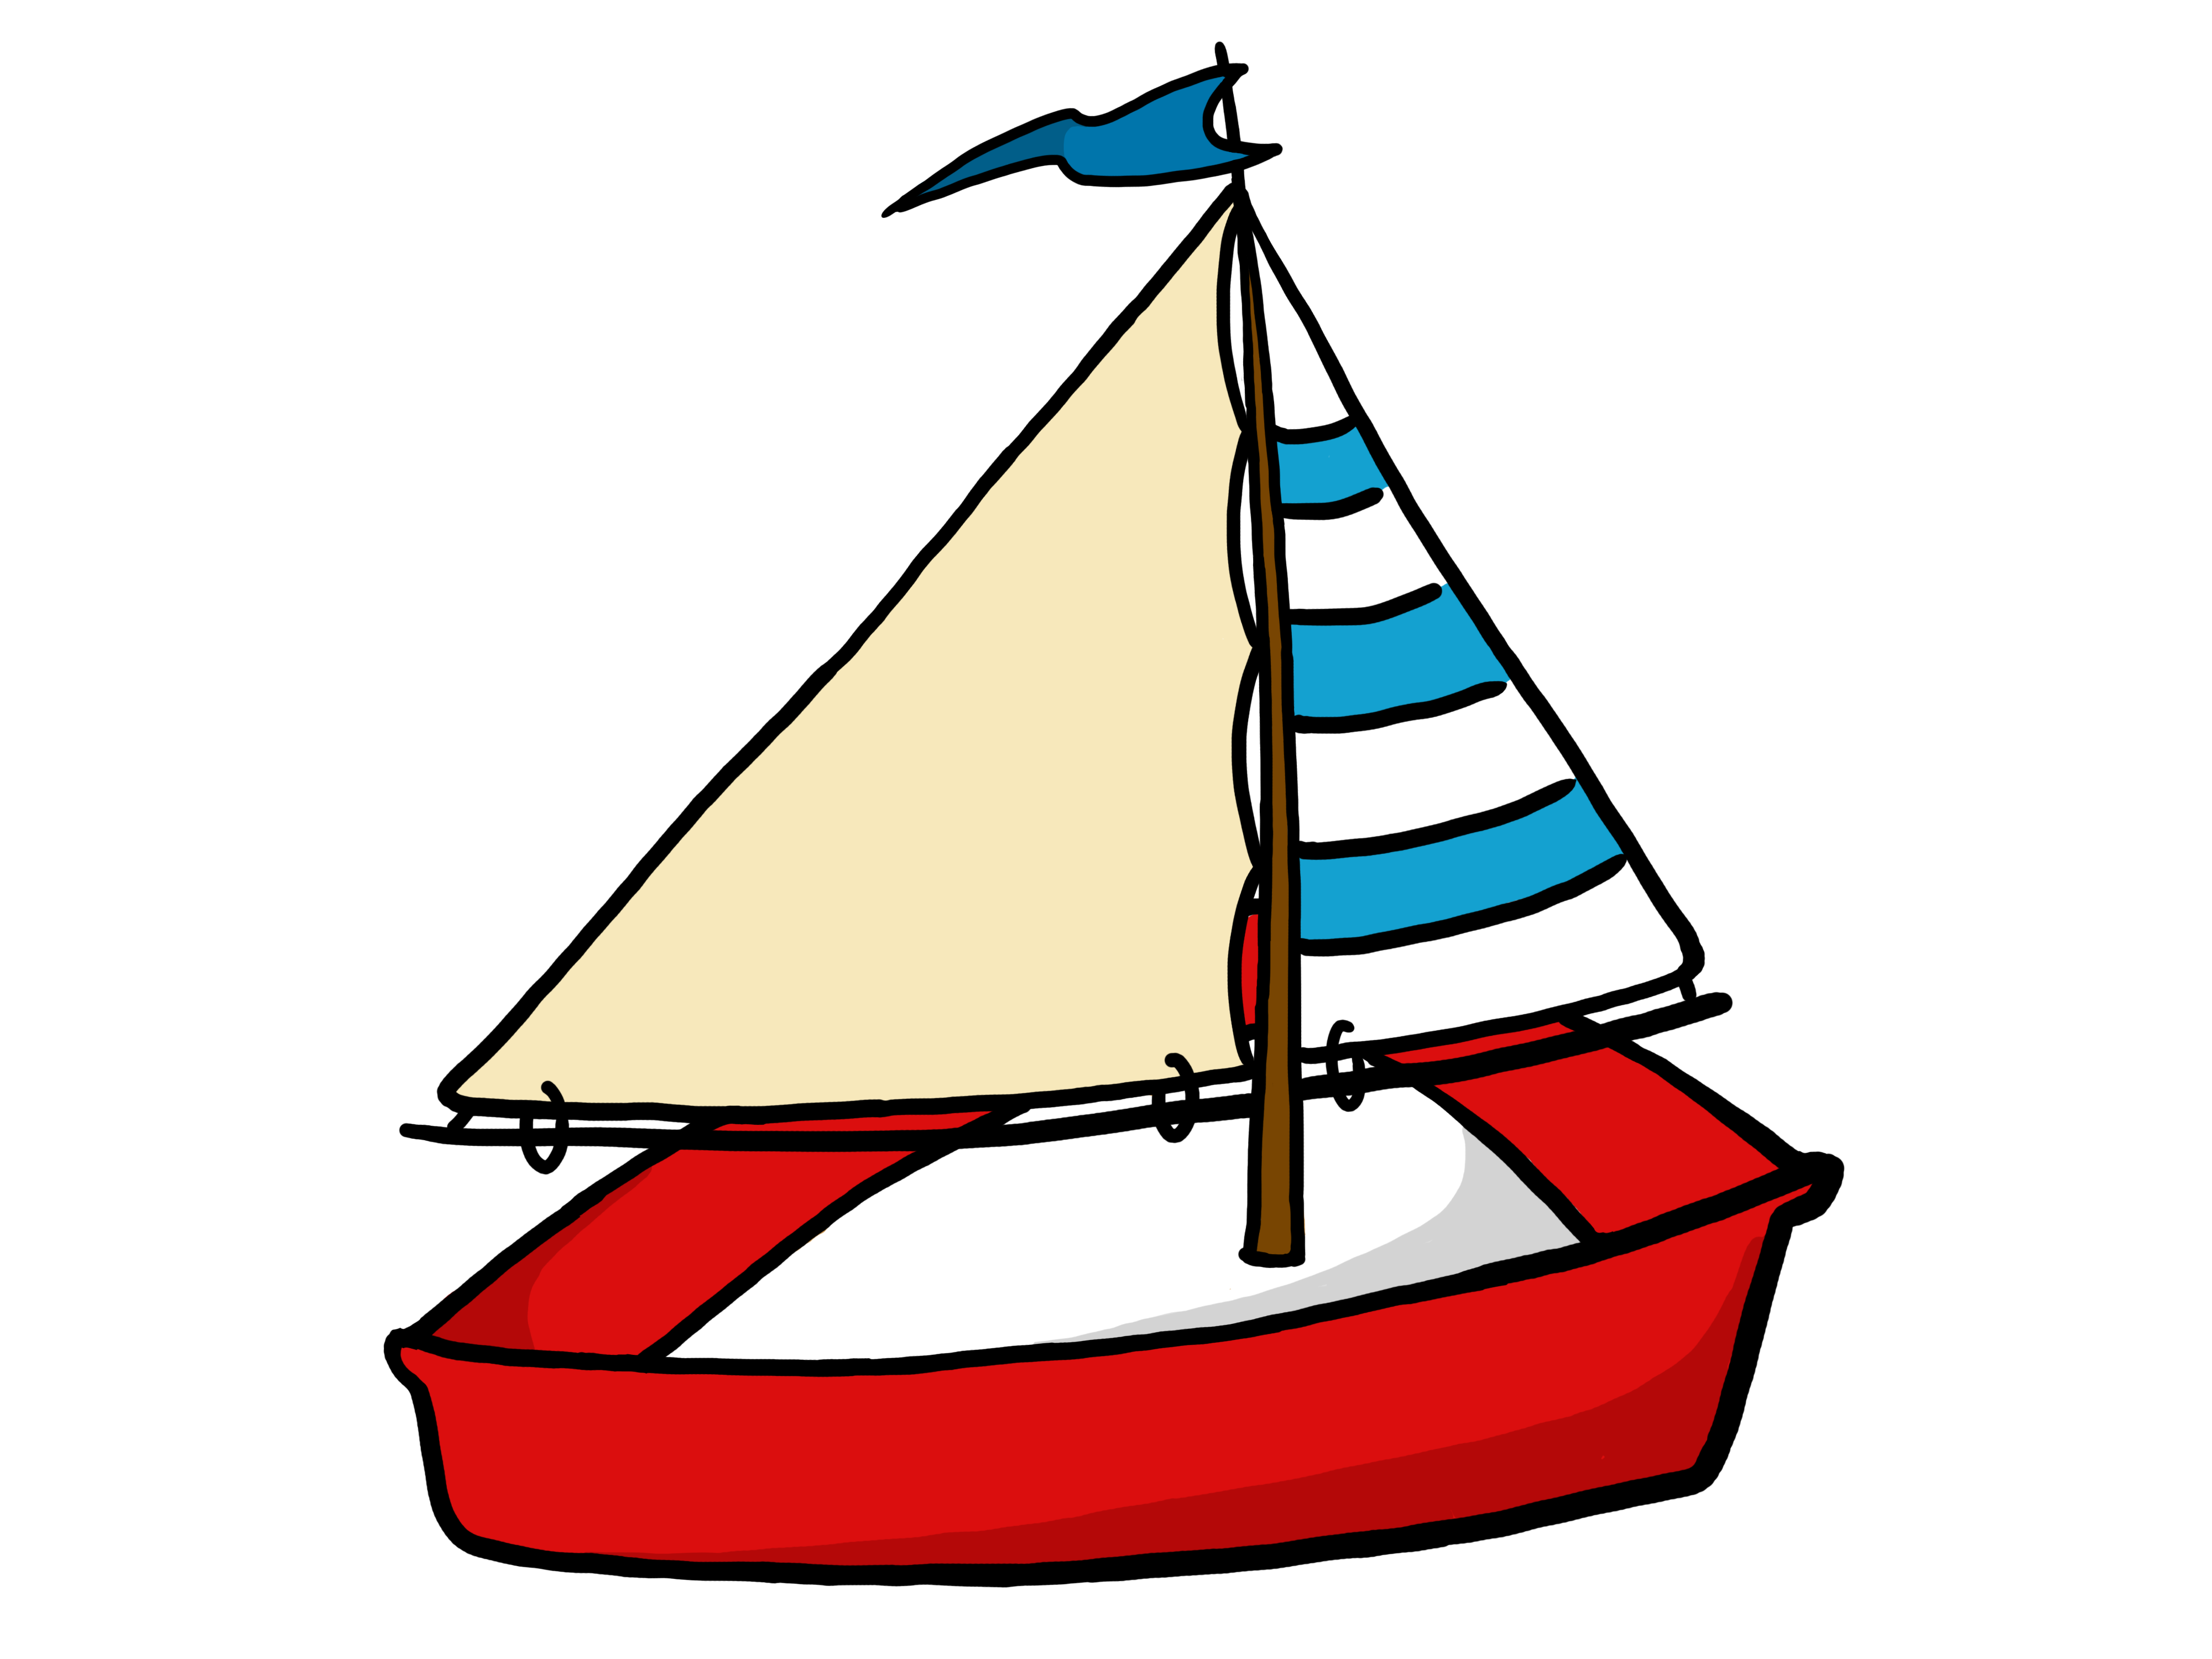 Boating panda free images. Sail clipart drift boat clip transparent stock